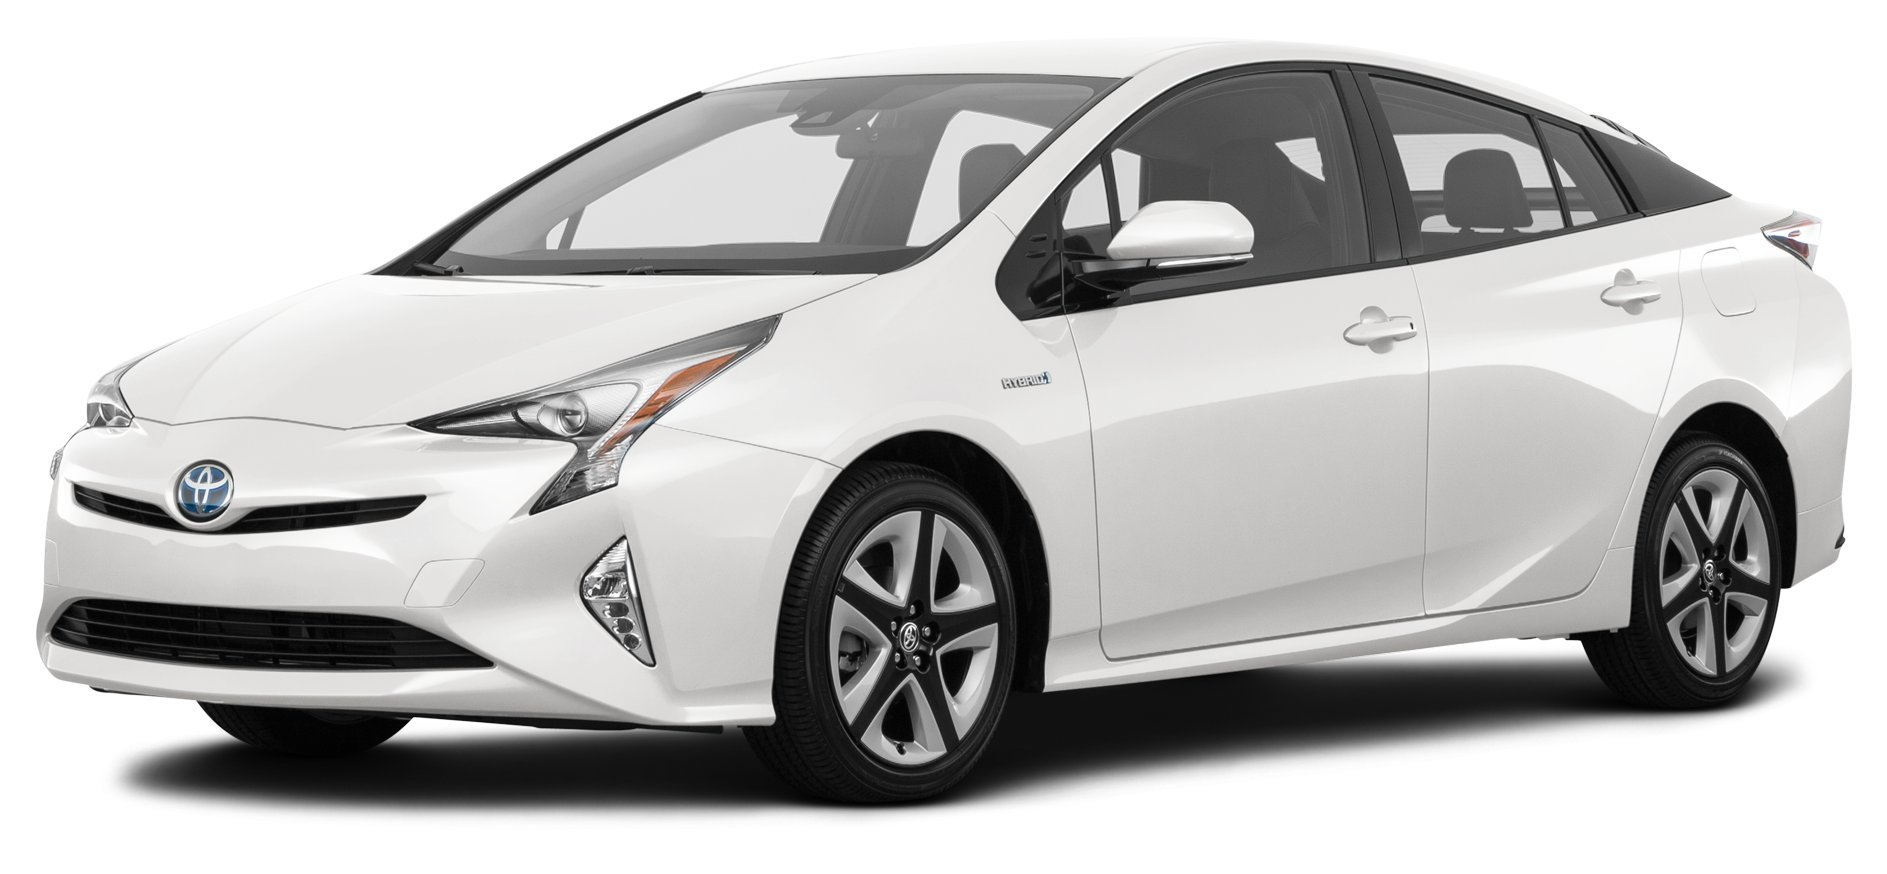 2017 toyota prius reviews images and specs vehicles. Black Bedroom Furniture Sets. Home Design Ideas